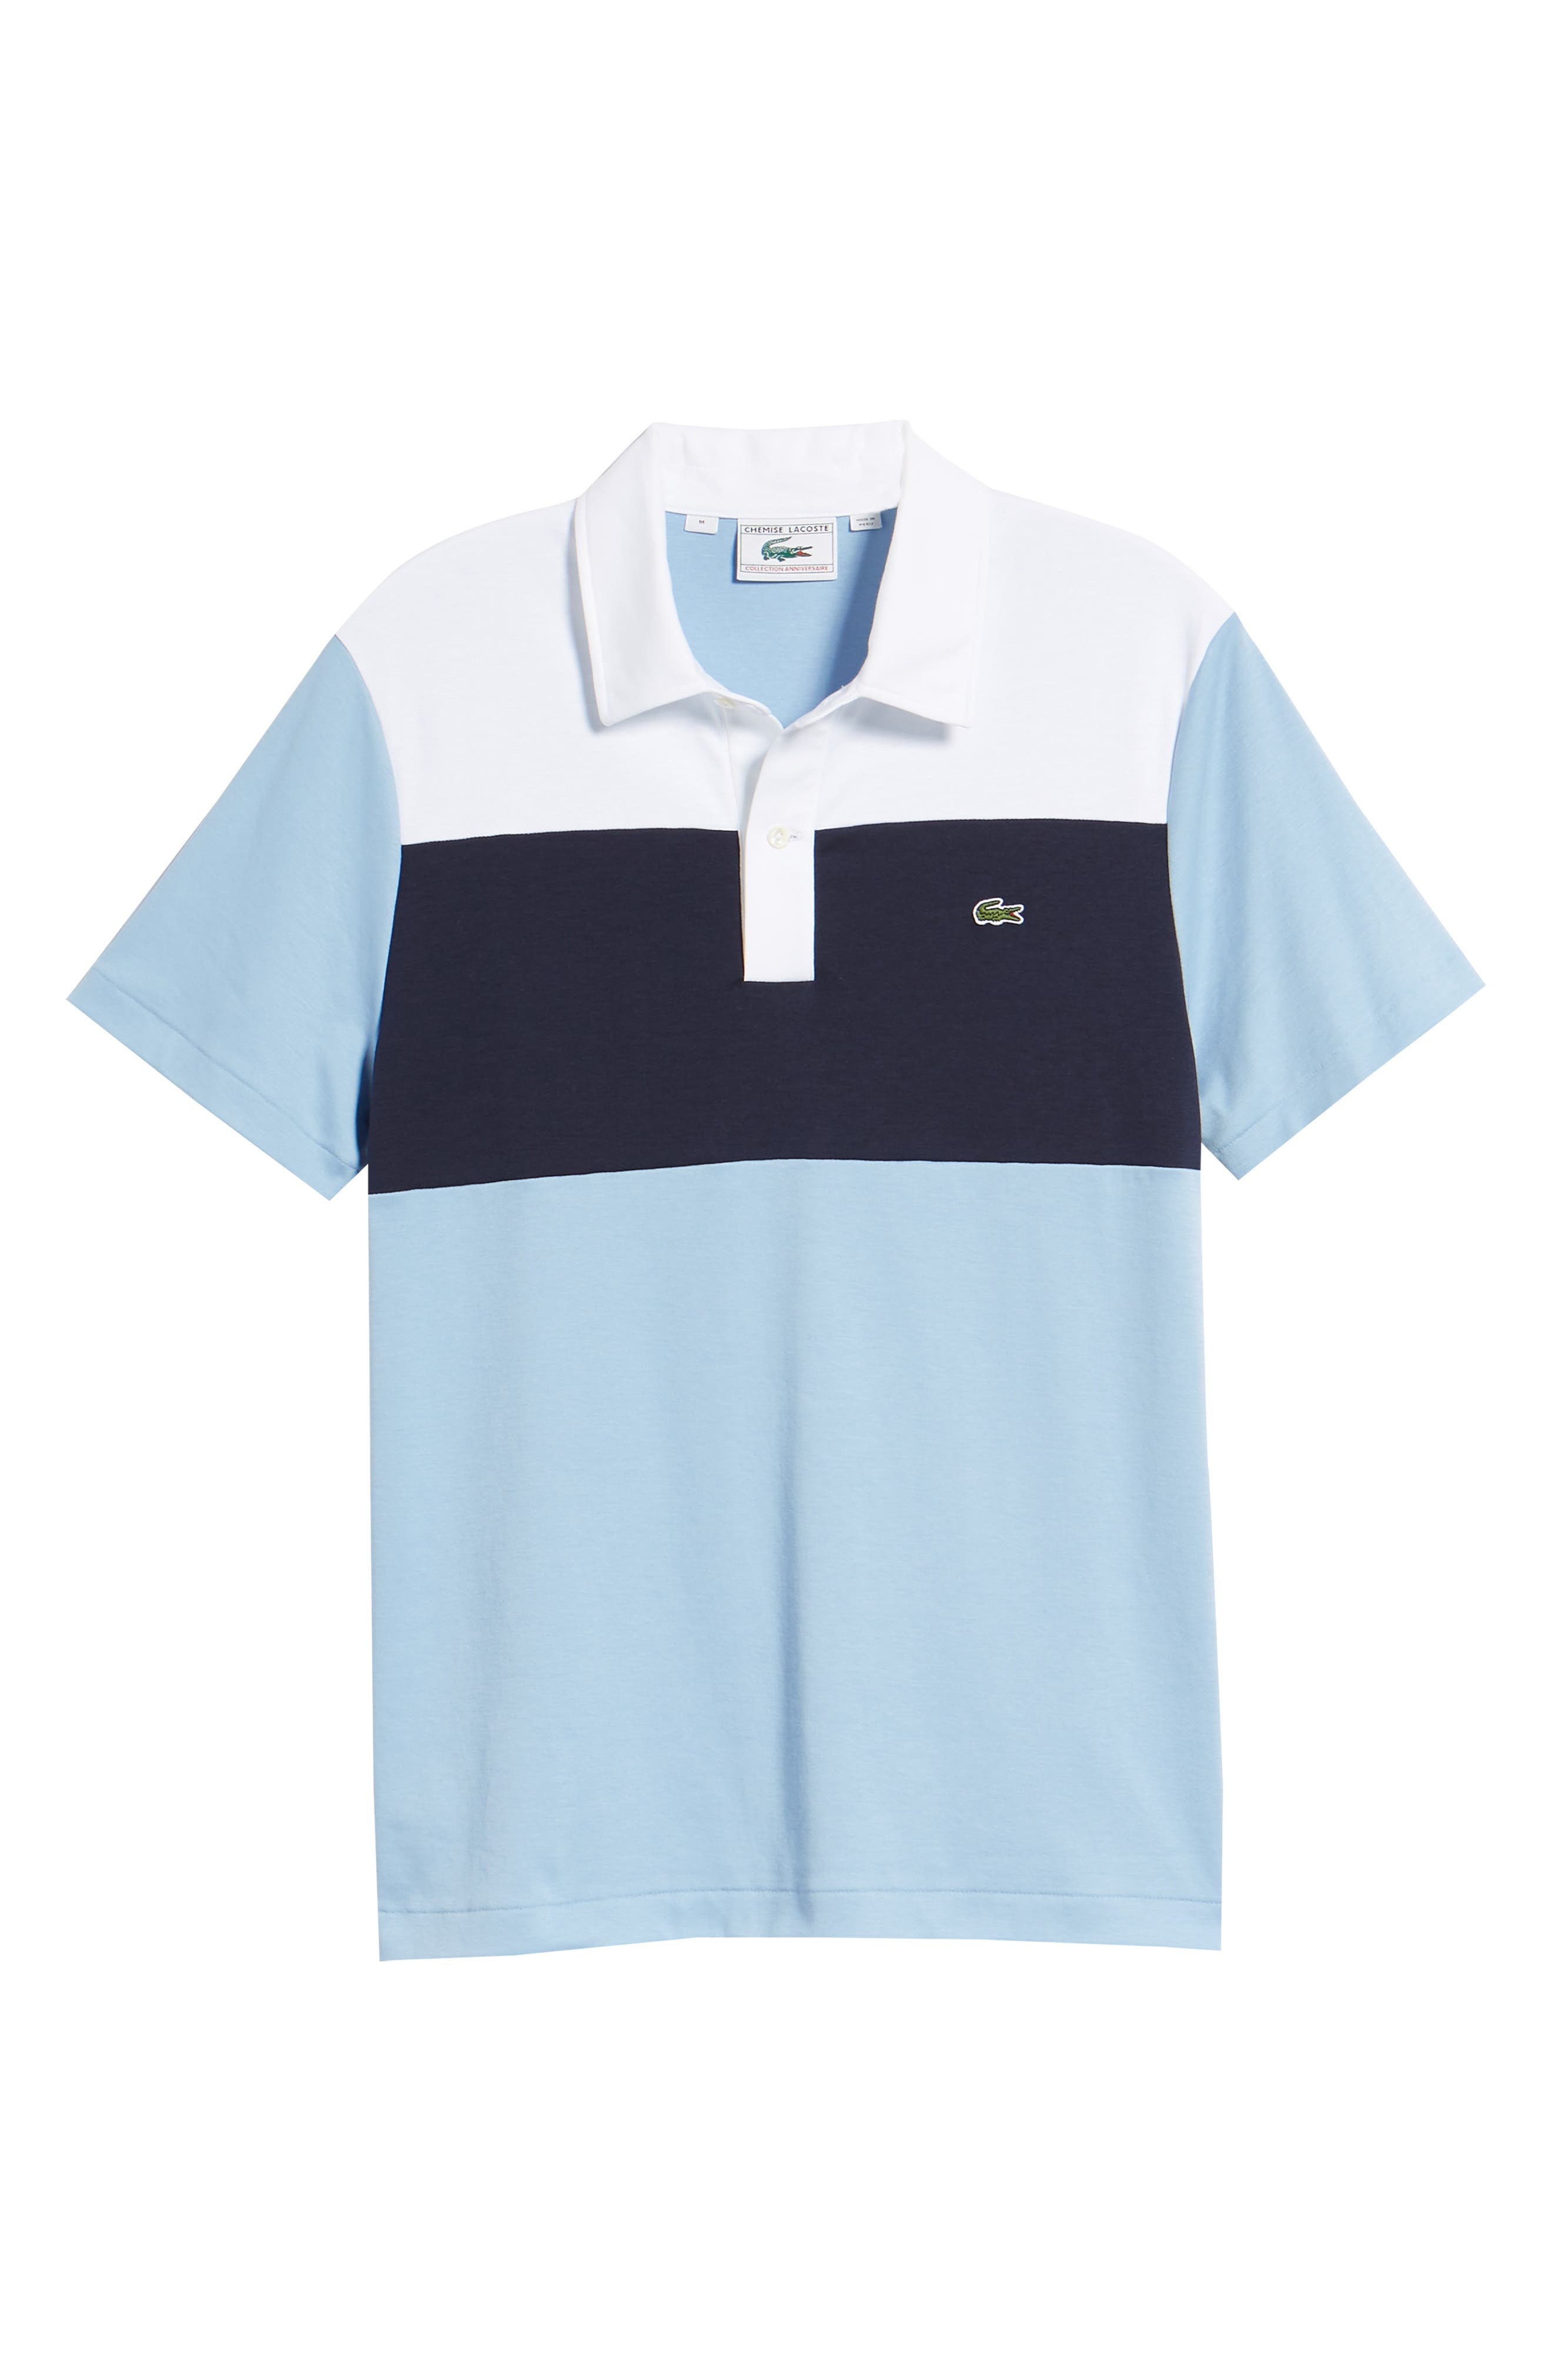 85th Anniversary Polo,                             Alternate thumbnail 6, color,                             DRAGONFLY/ NAVY BLUE-WHITE